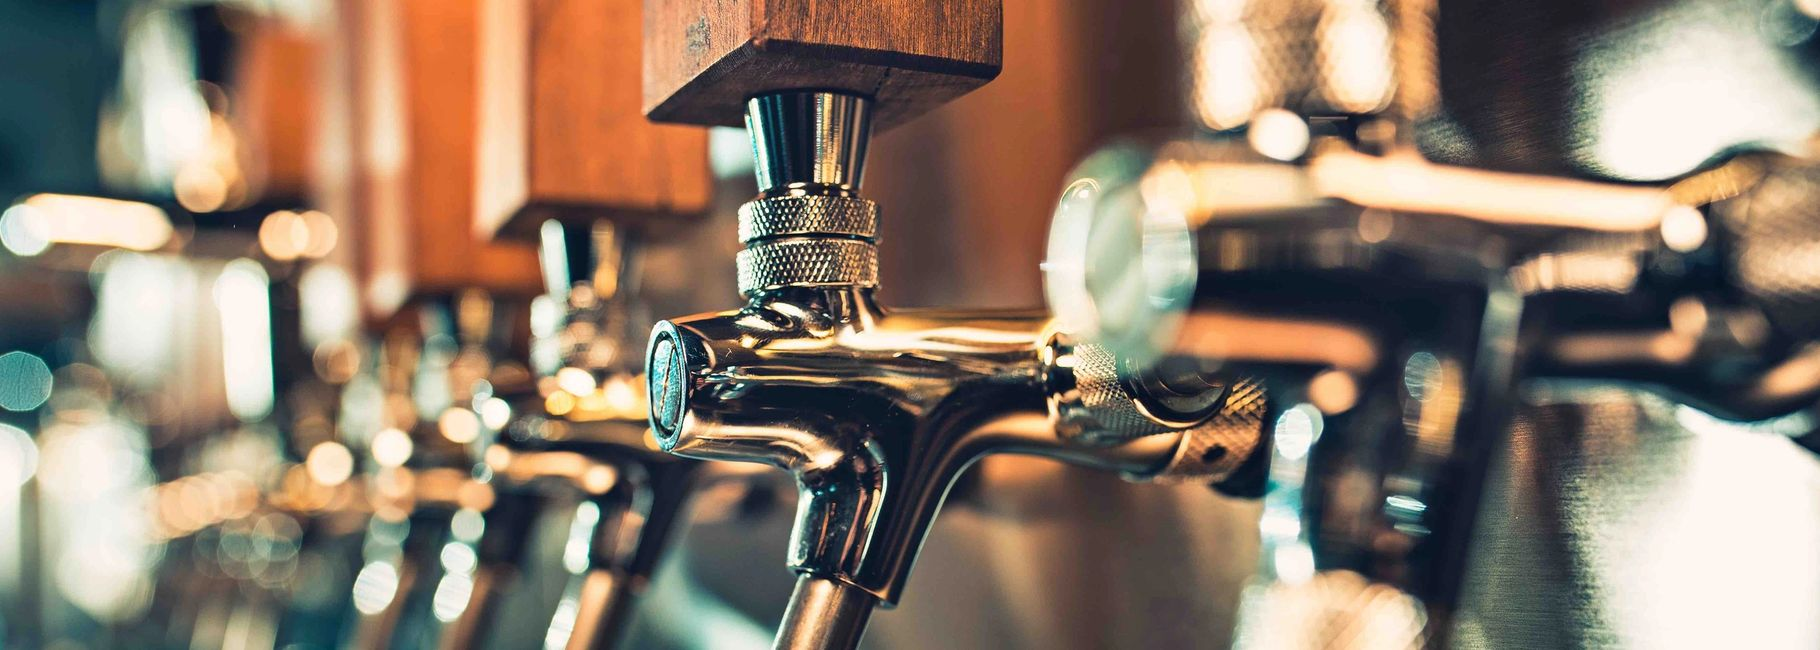 Craft beer taps.